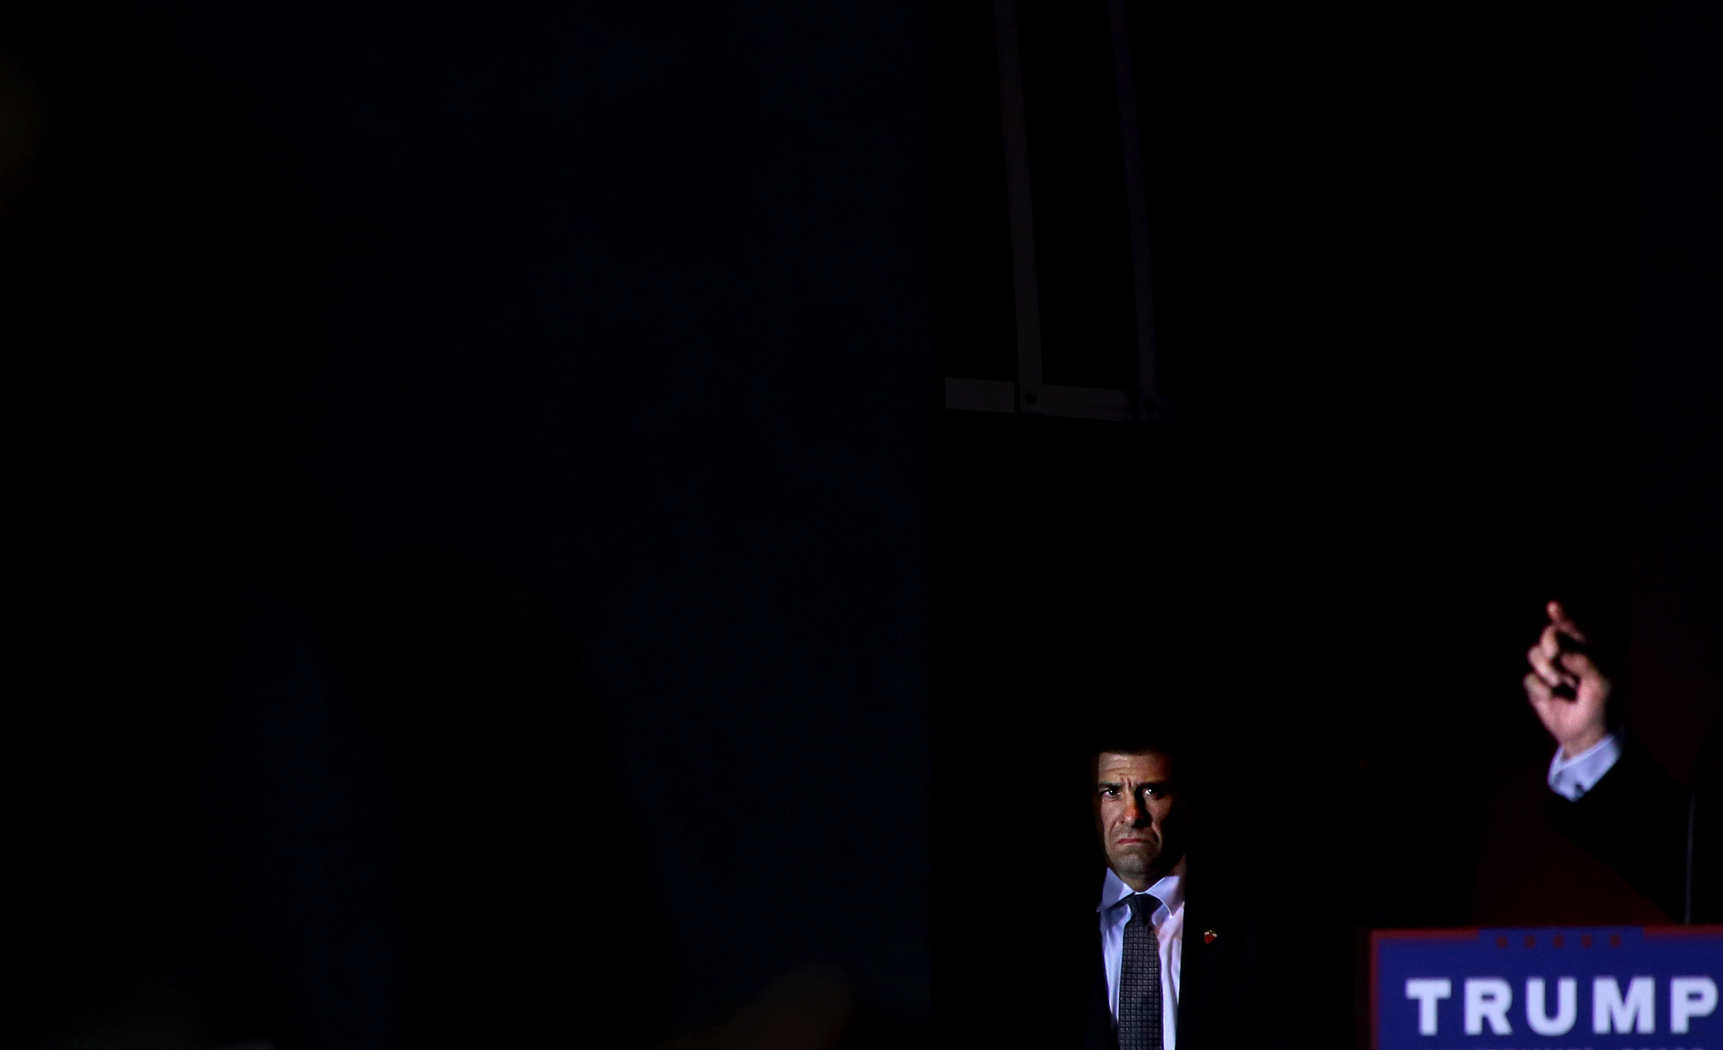 (L-R) A Secret Service agent surveys the crowd as U.S. Presidential candidate Donald Trump (R-NY) speaks at a rally at Sunset Cove Amphitheater in Boca Raton, FL, on March 13, 2016.(For TIME magazine)